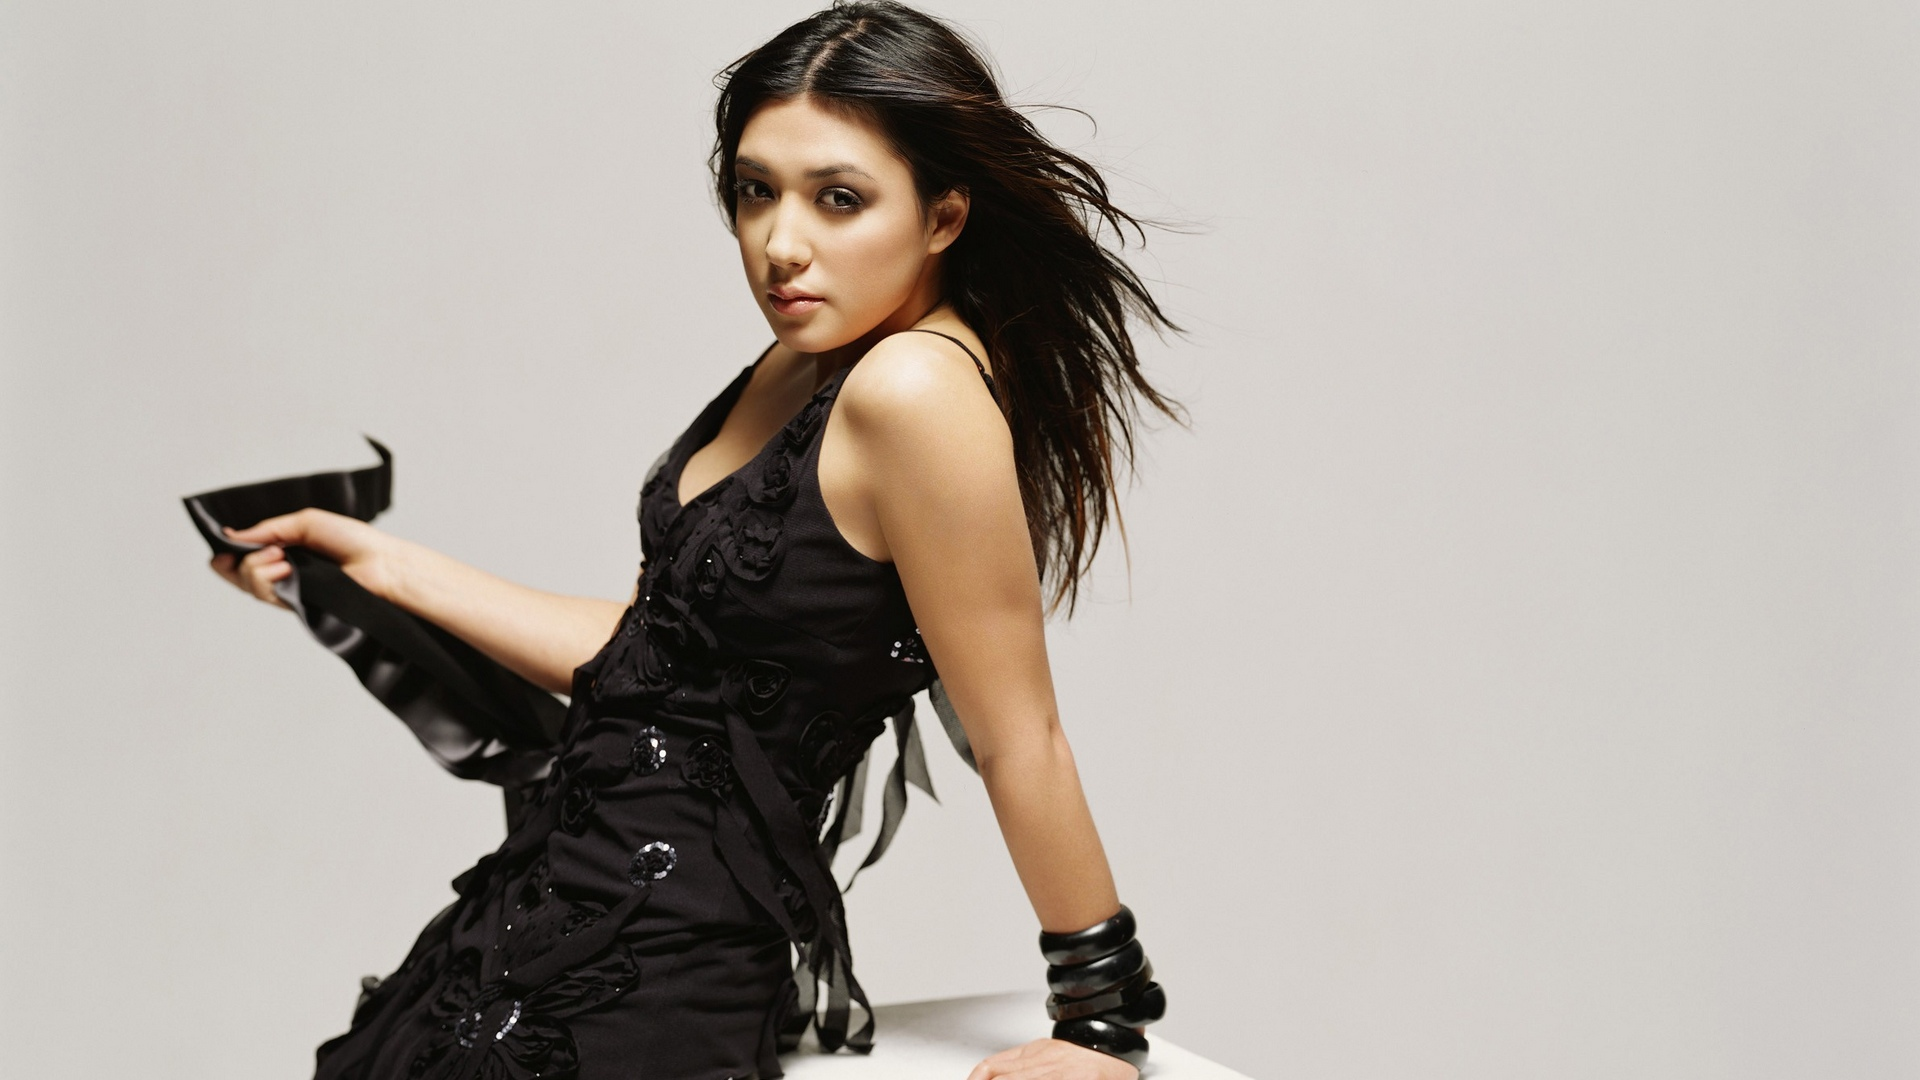 Pictures Of Michelle Branch